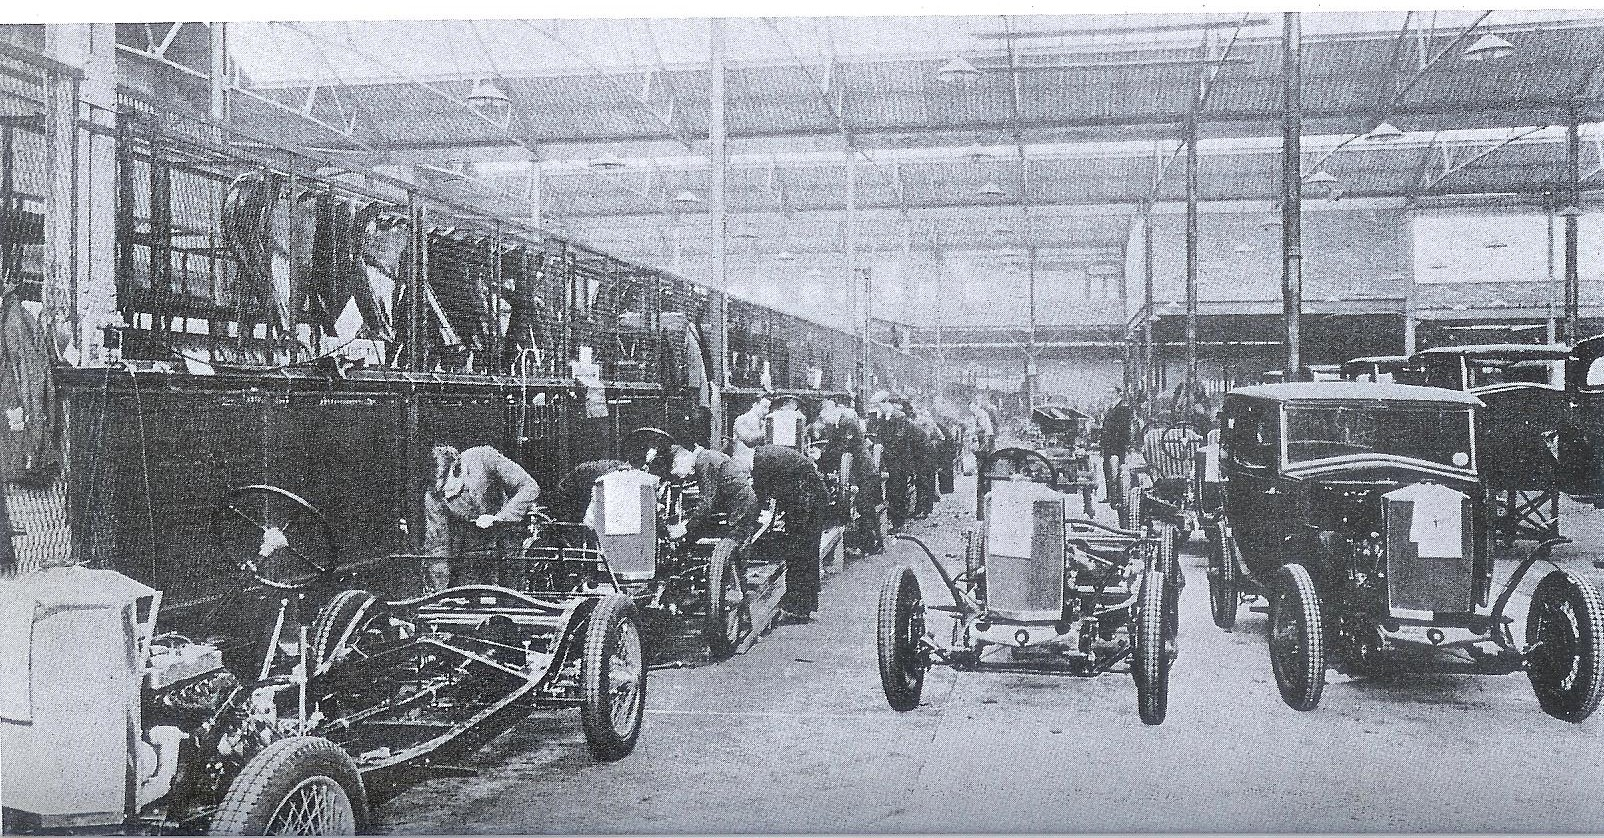 Riley (Coventry) Ltd Works